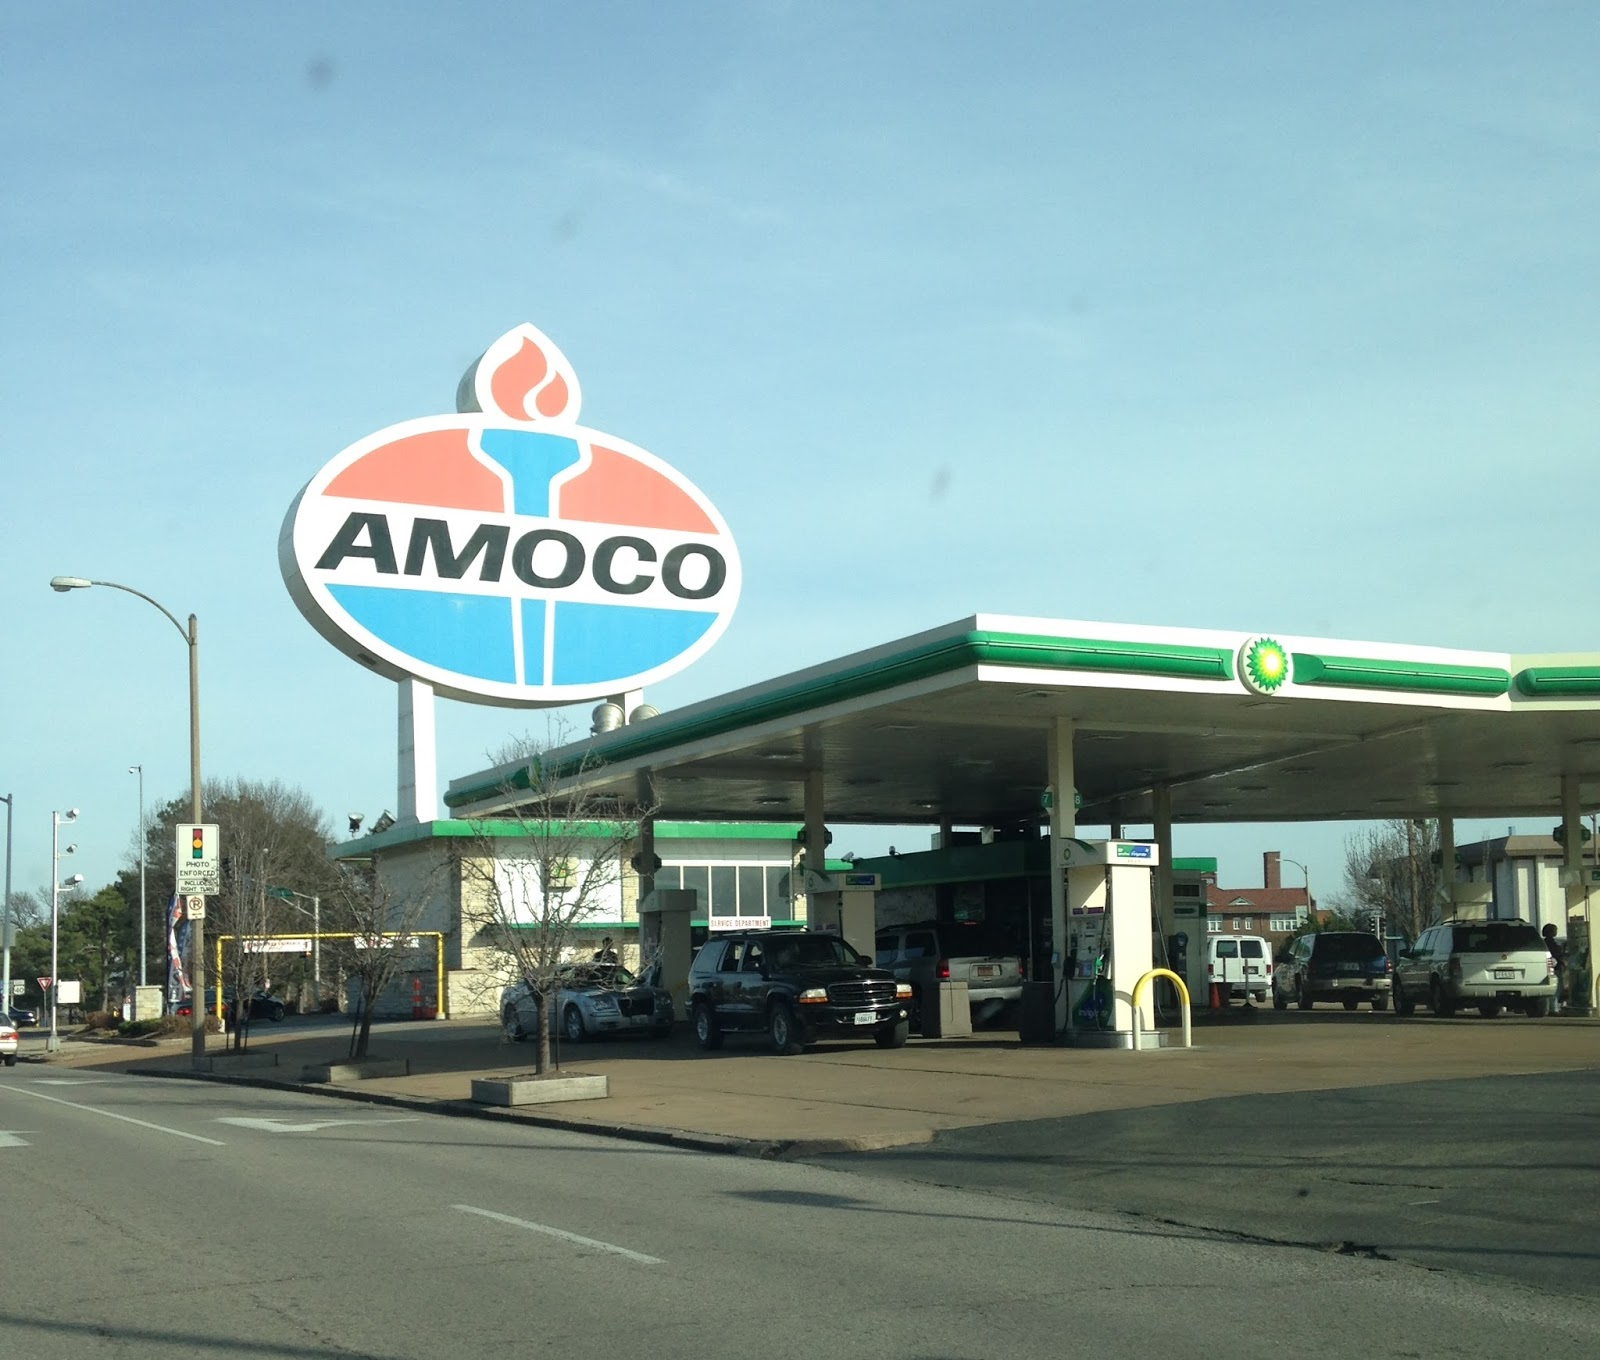 bp amoco case group 1 am Free essay: bp/amoco merger case group 1 keshavaraja alive stephen felkins therese jackson andrea marrical eric weiss executive summary prior to the merger.